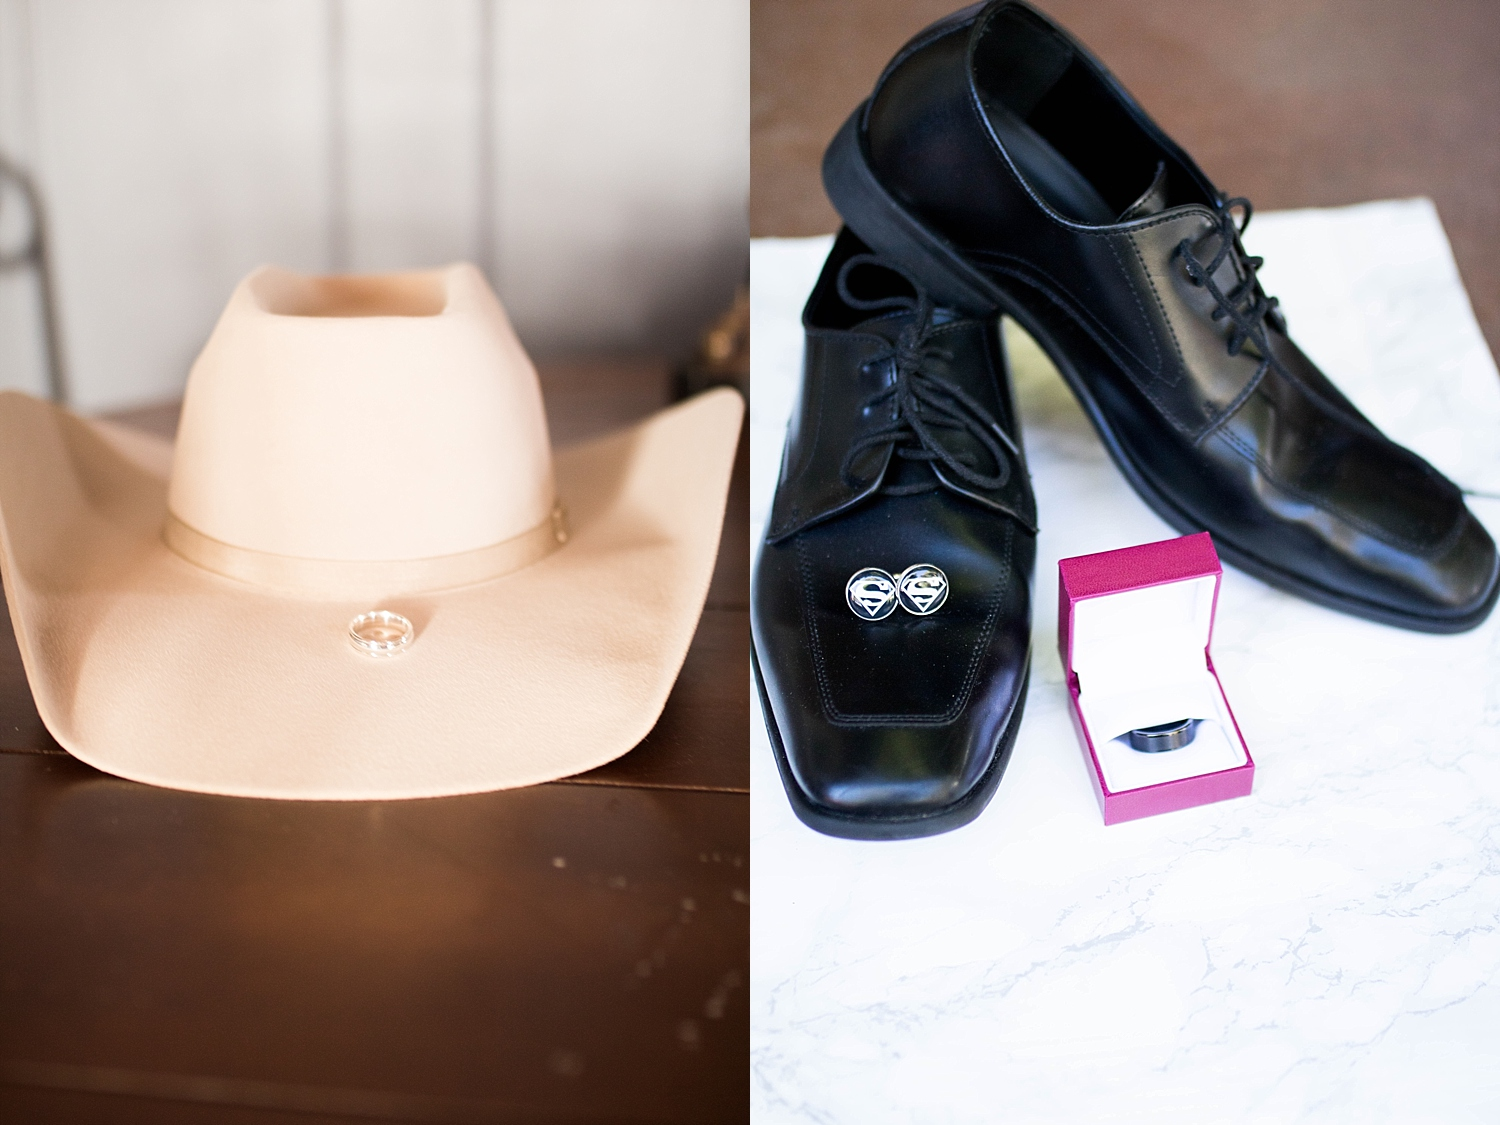 Groom's cowboy hat and James Avery wedding band. Groom's black loafers, black and silver superman cuff links, and black wedding band.